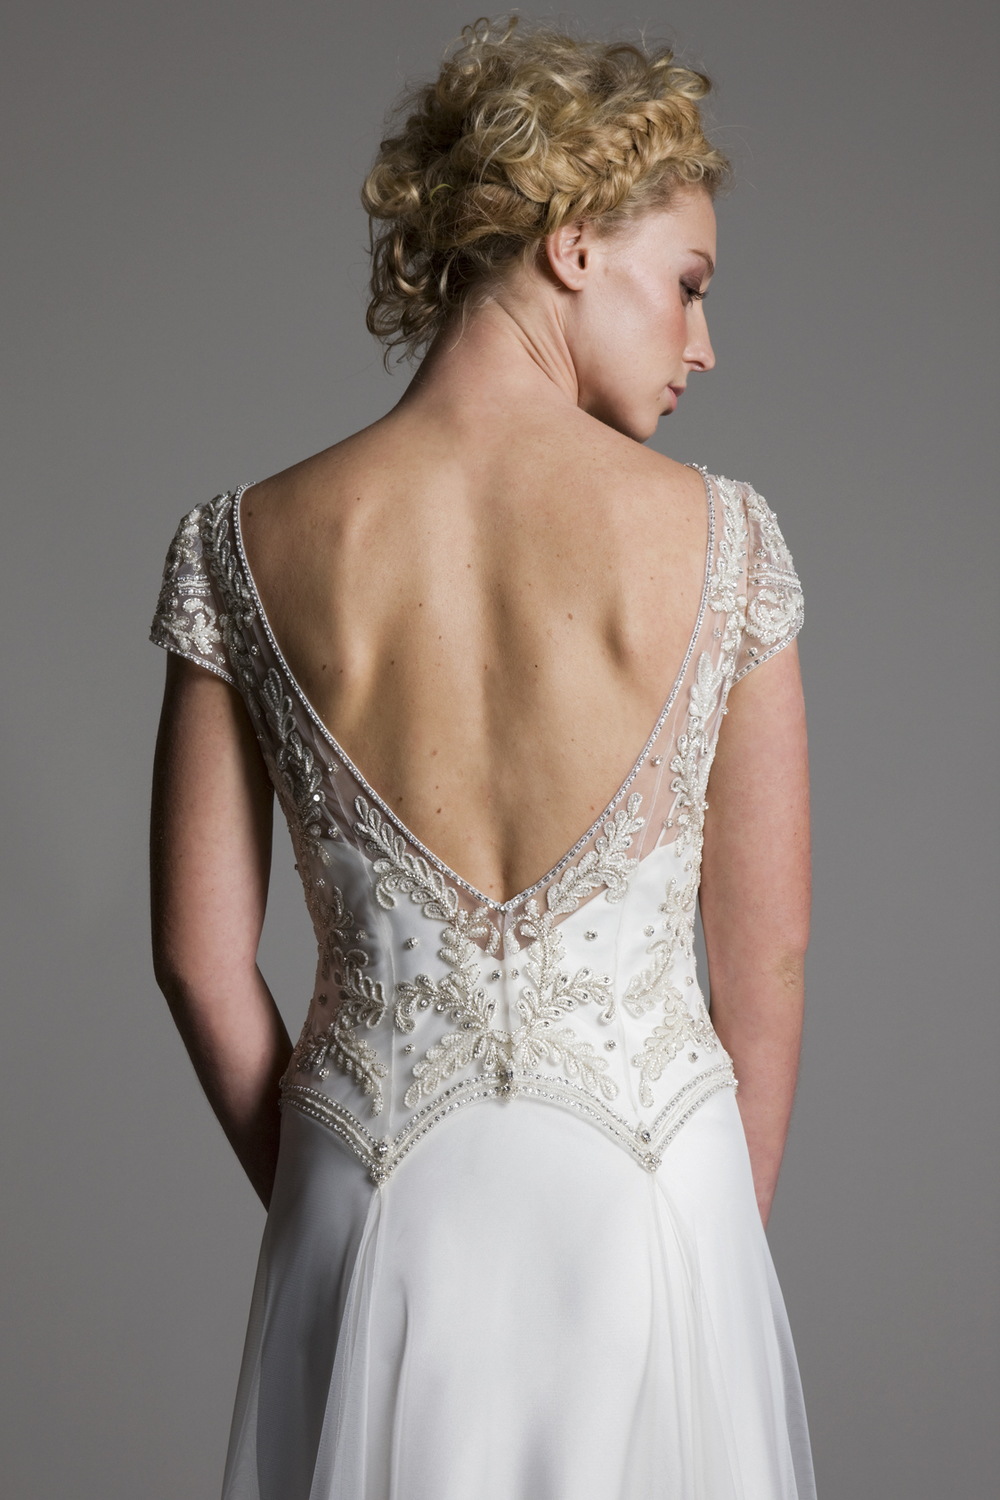 Detailed back view of the Marianne embellished beaded detailed cap sleeved bodice with tulle skirt on top of a V neck ivory satin slip bridal wedding dress by Halfpenny London